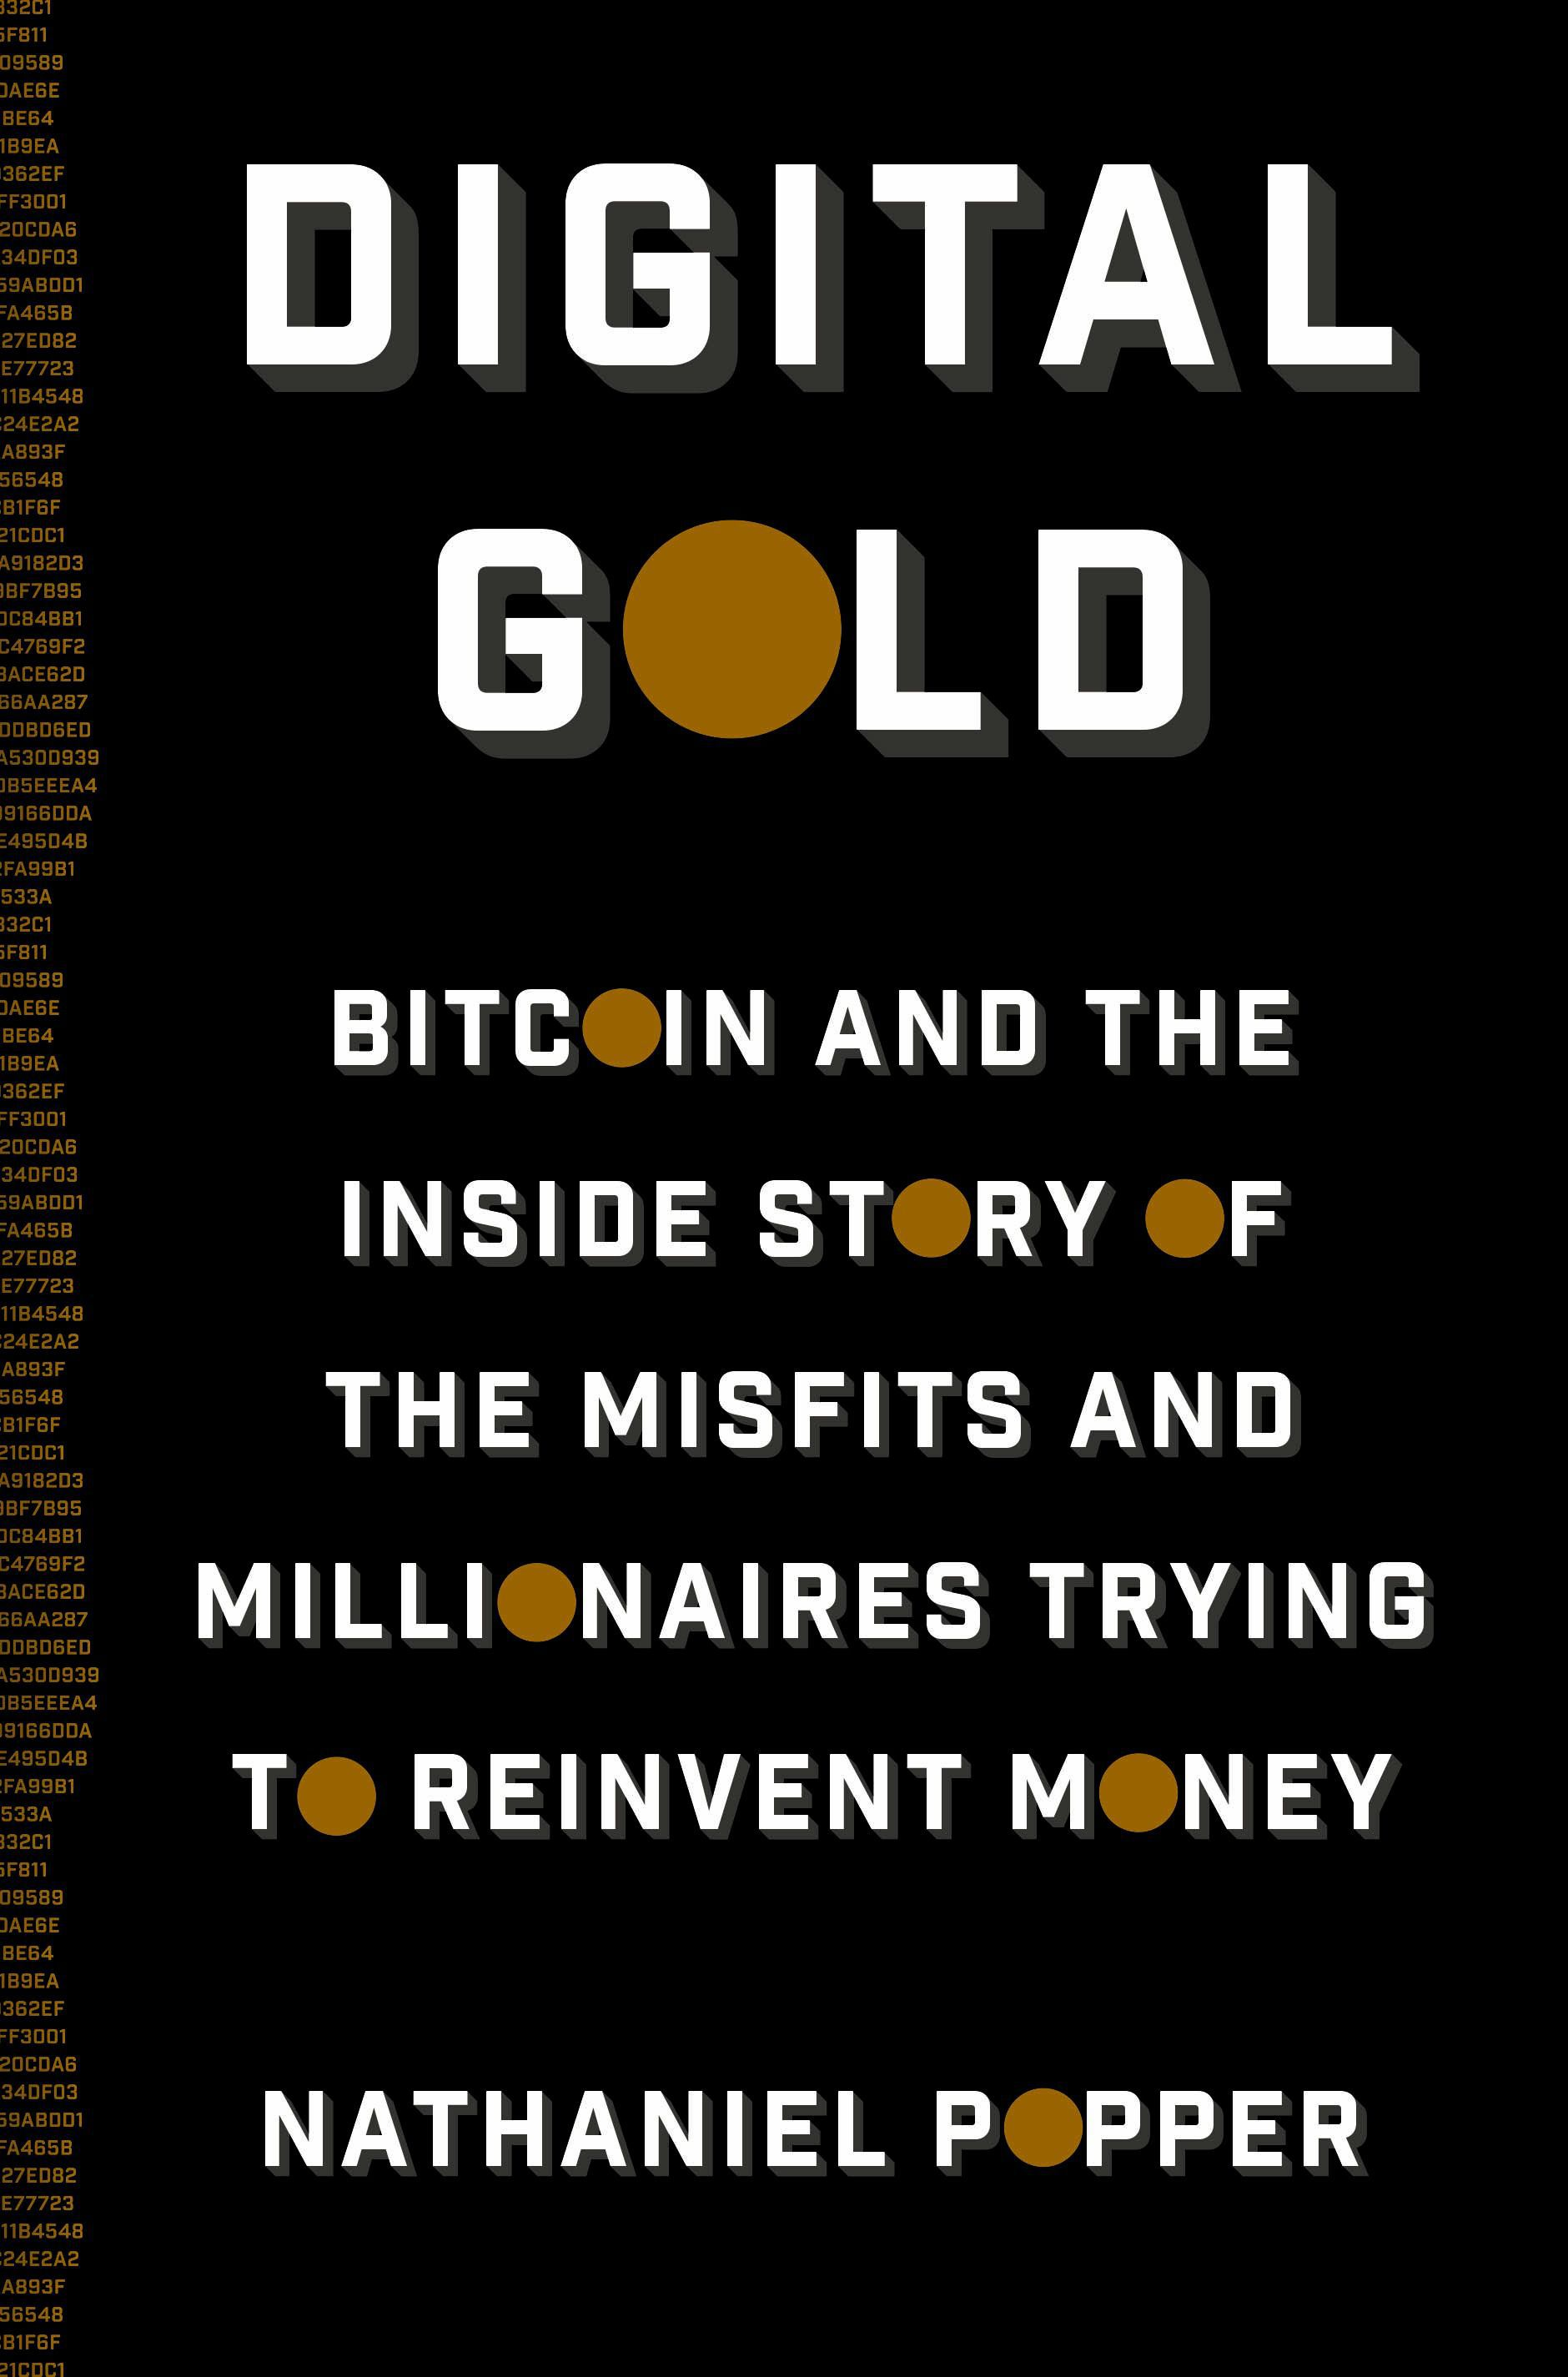 This article is excerpted and adapted from 'Digital Gold: Bitcoin and the Inside Story of the Misfits and Millionaires Trying to Reinvent Money' by Nathaniel Popper.